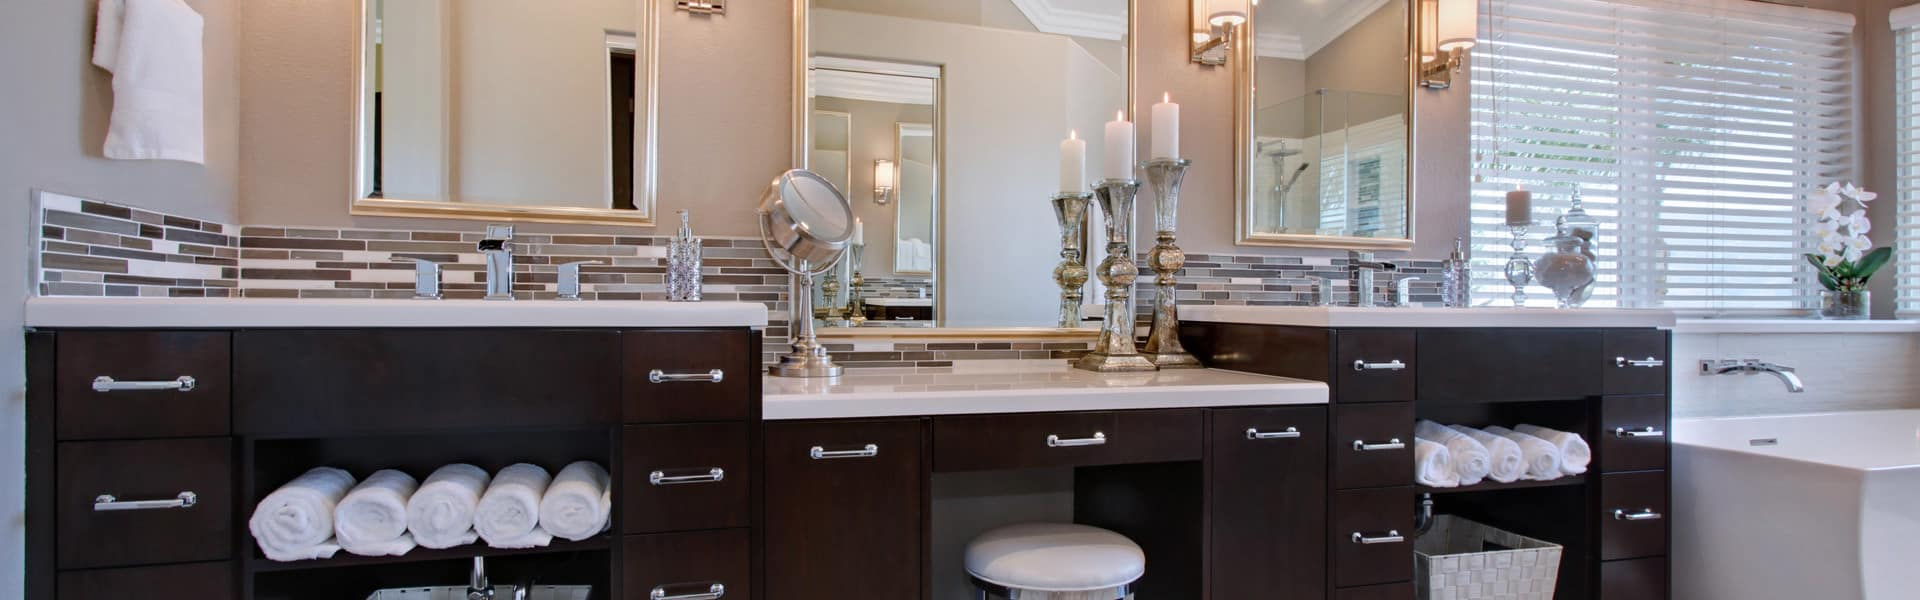 Bathroom interior design services 27 diamonds interior for Bathroom interior design services